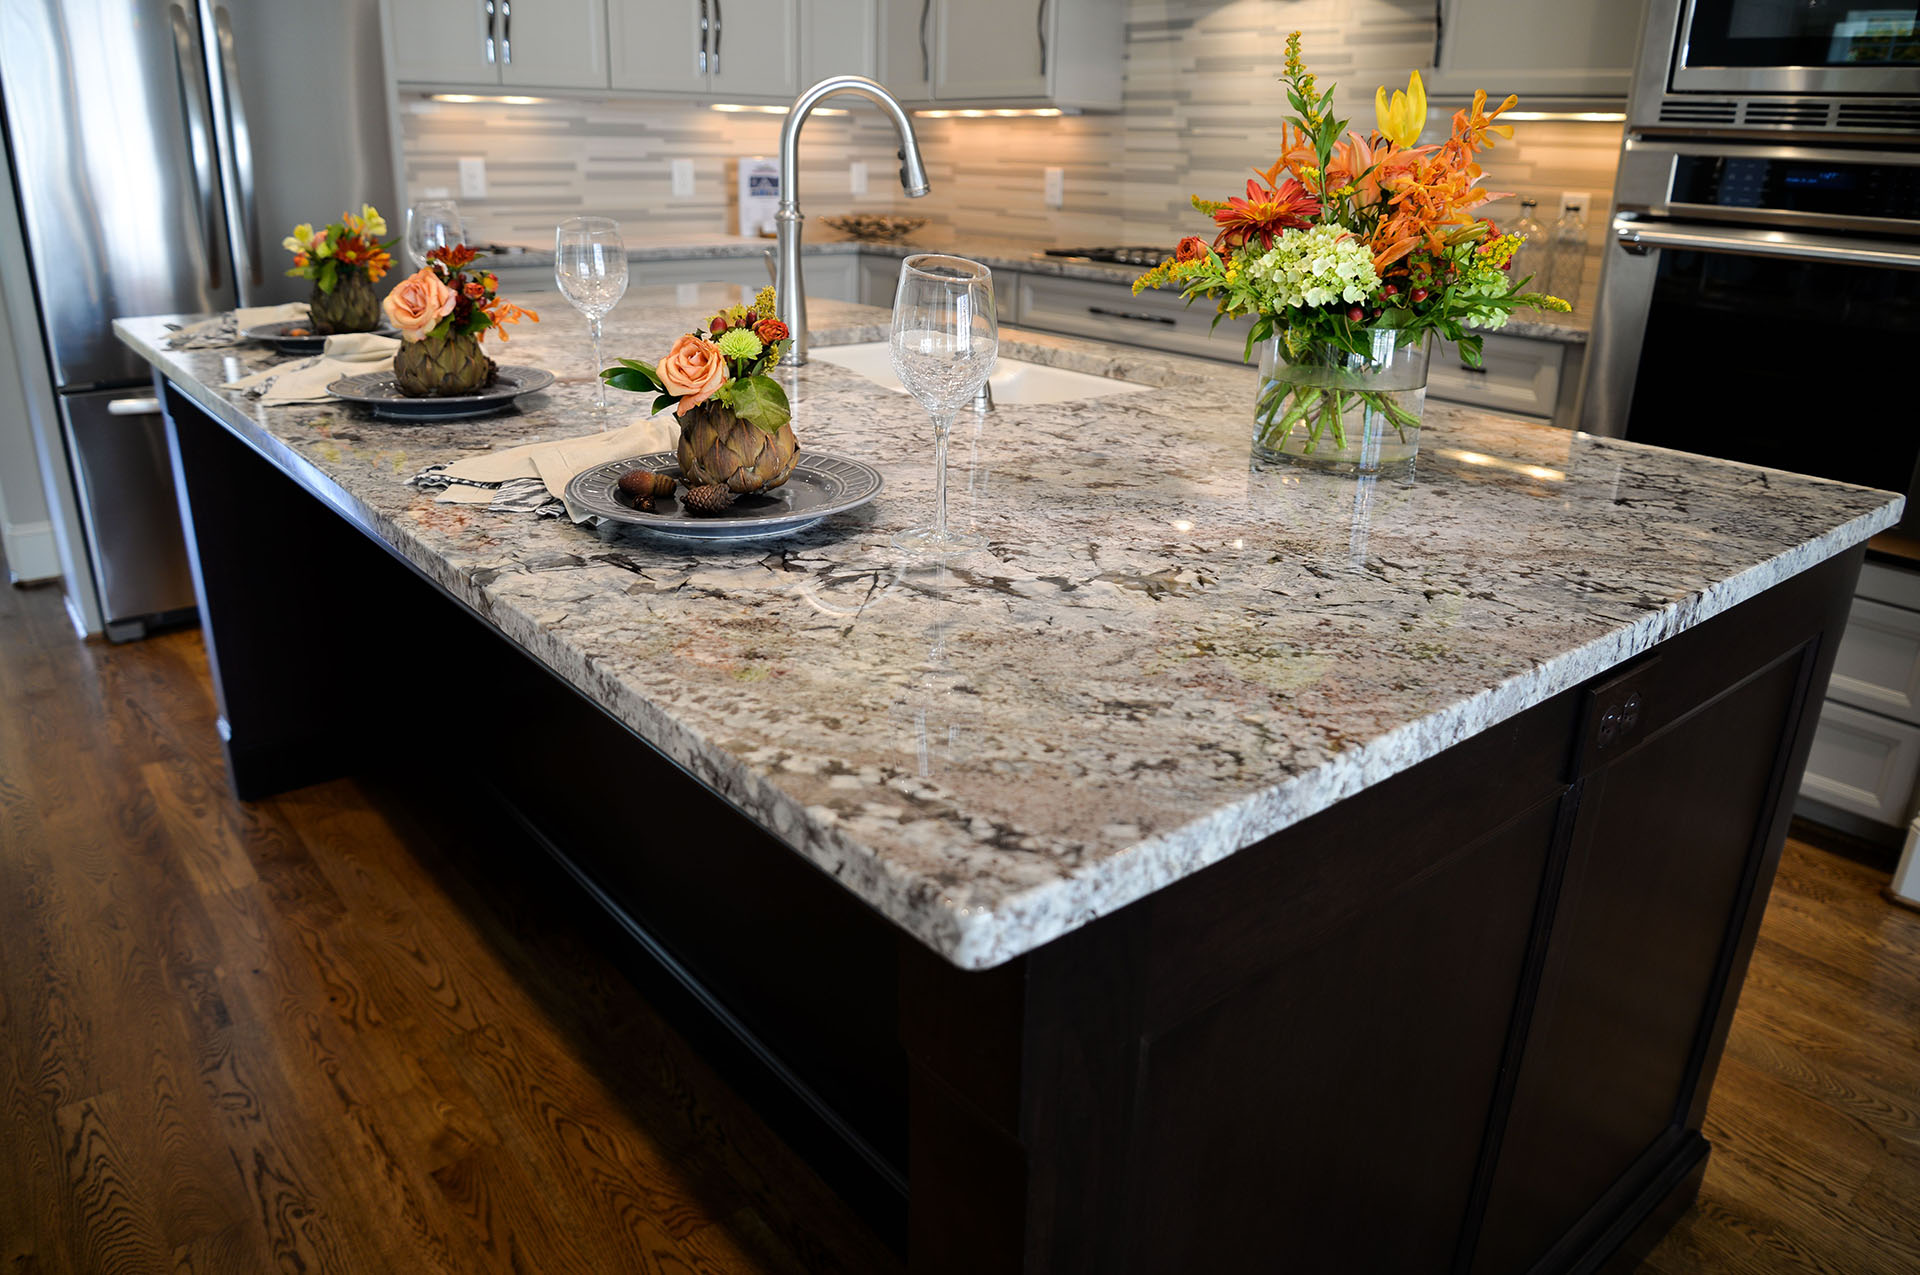 Easy Steps To Seal A Granite Countertop